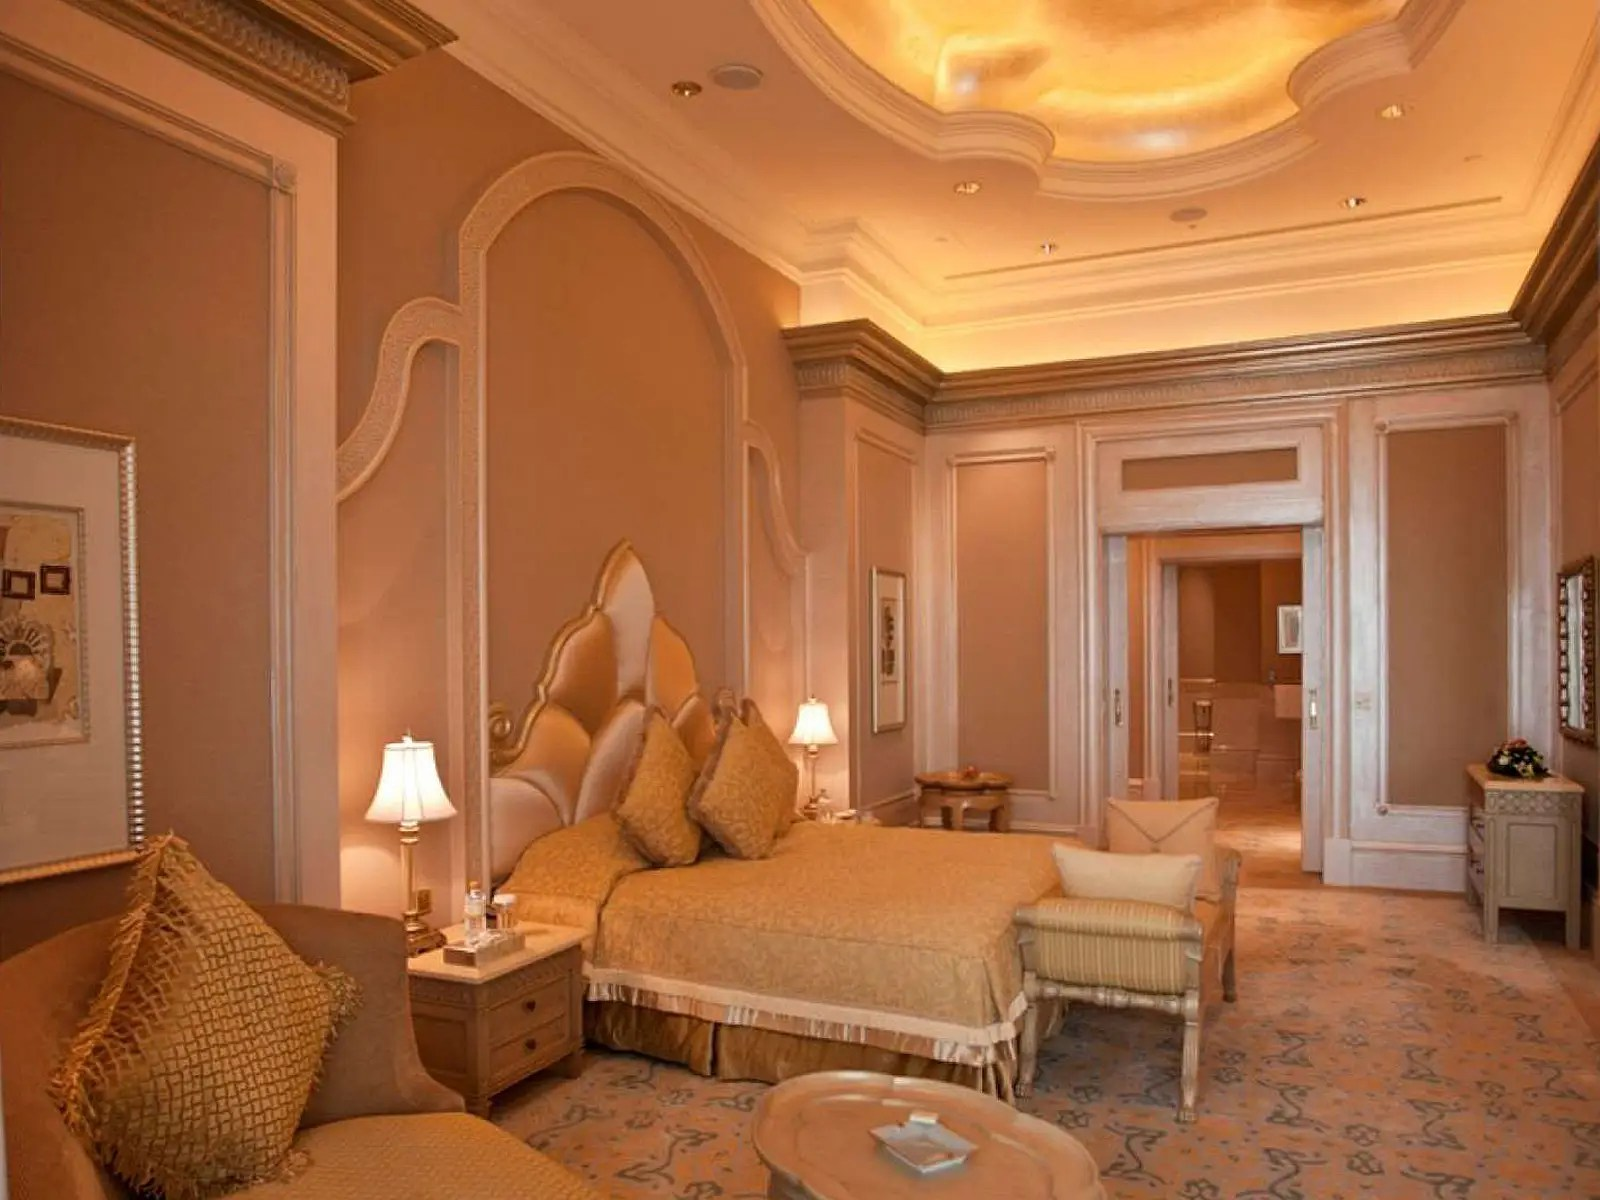 The Pearl bedroom of the Palace Suite has views of the garden, fountains or pools, and a partial sea view.